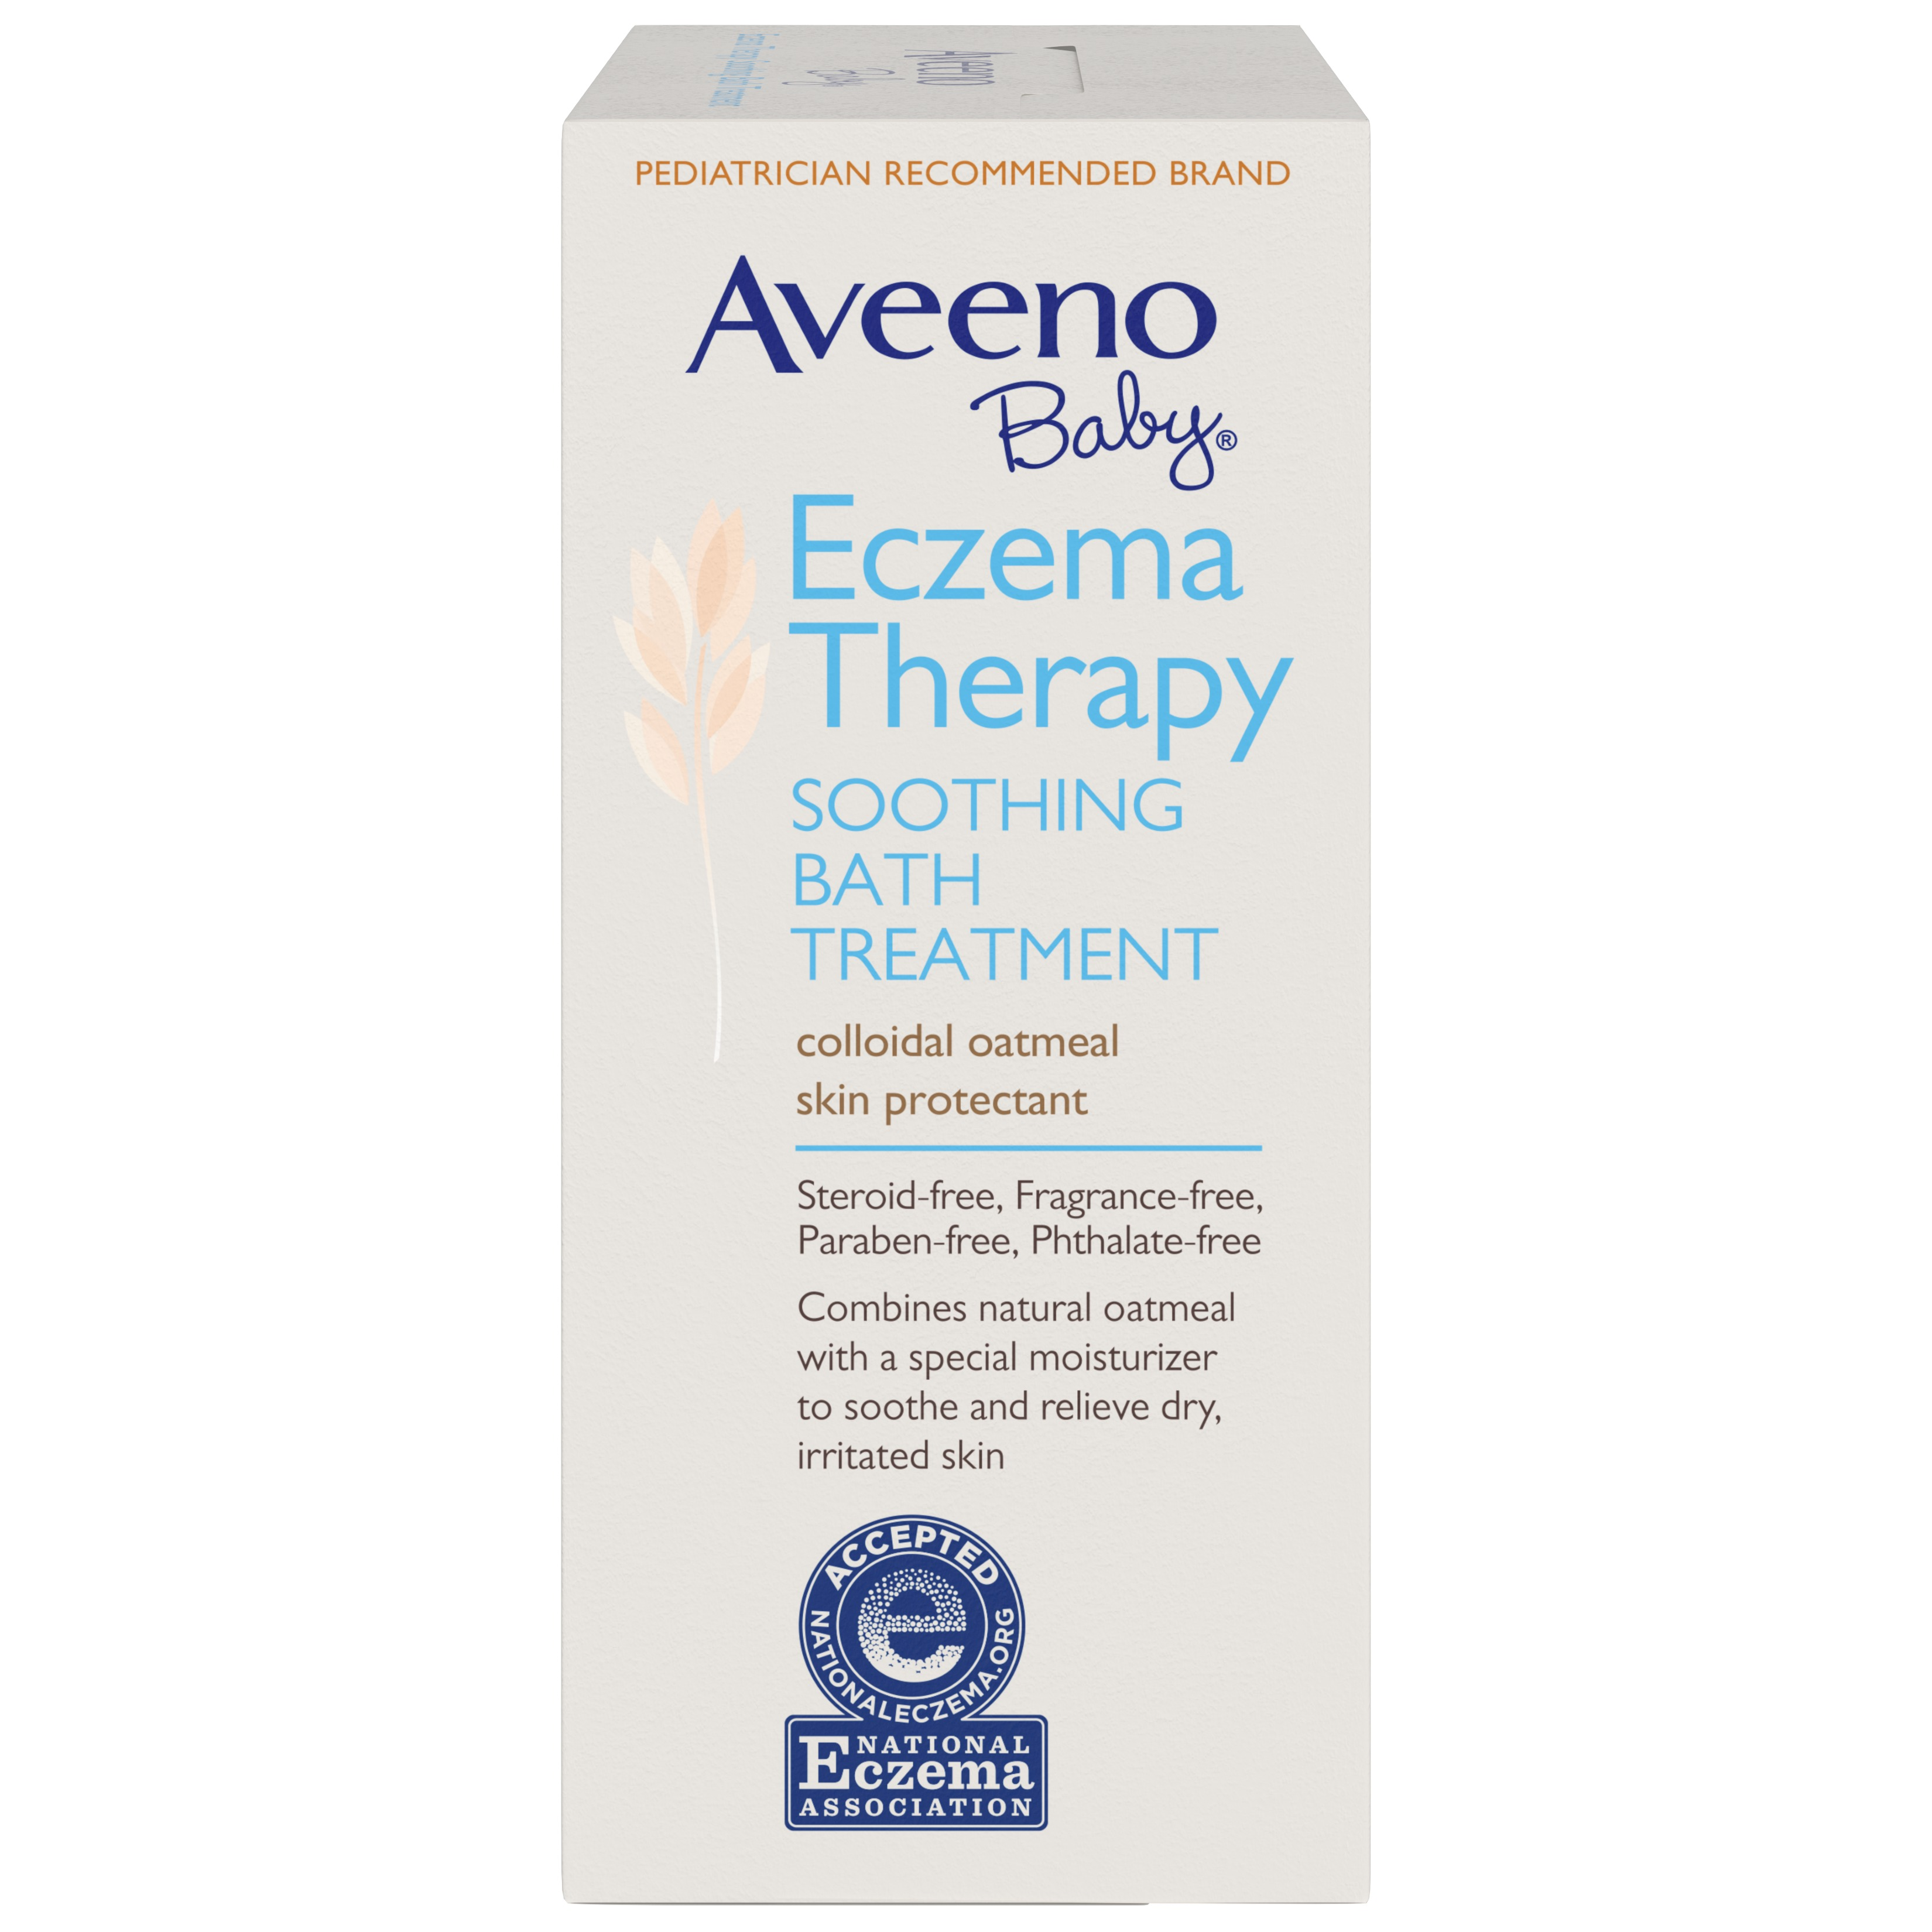 Aveeno Baby Eczema Therapy Soothing Bath Treatment with Natural Oatmeal, 5  ct